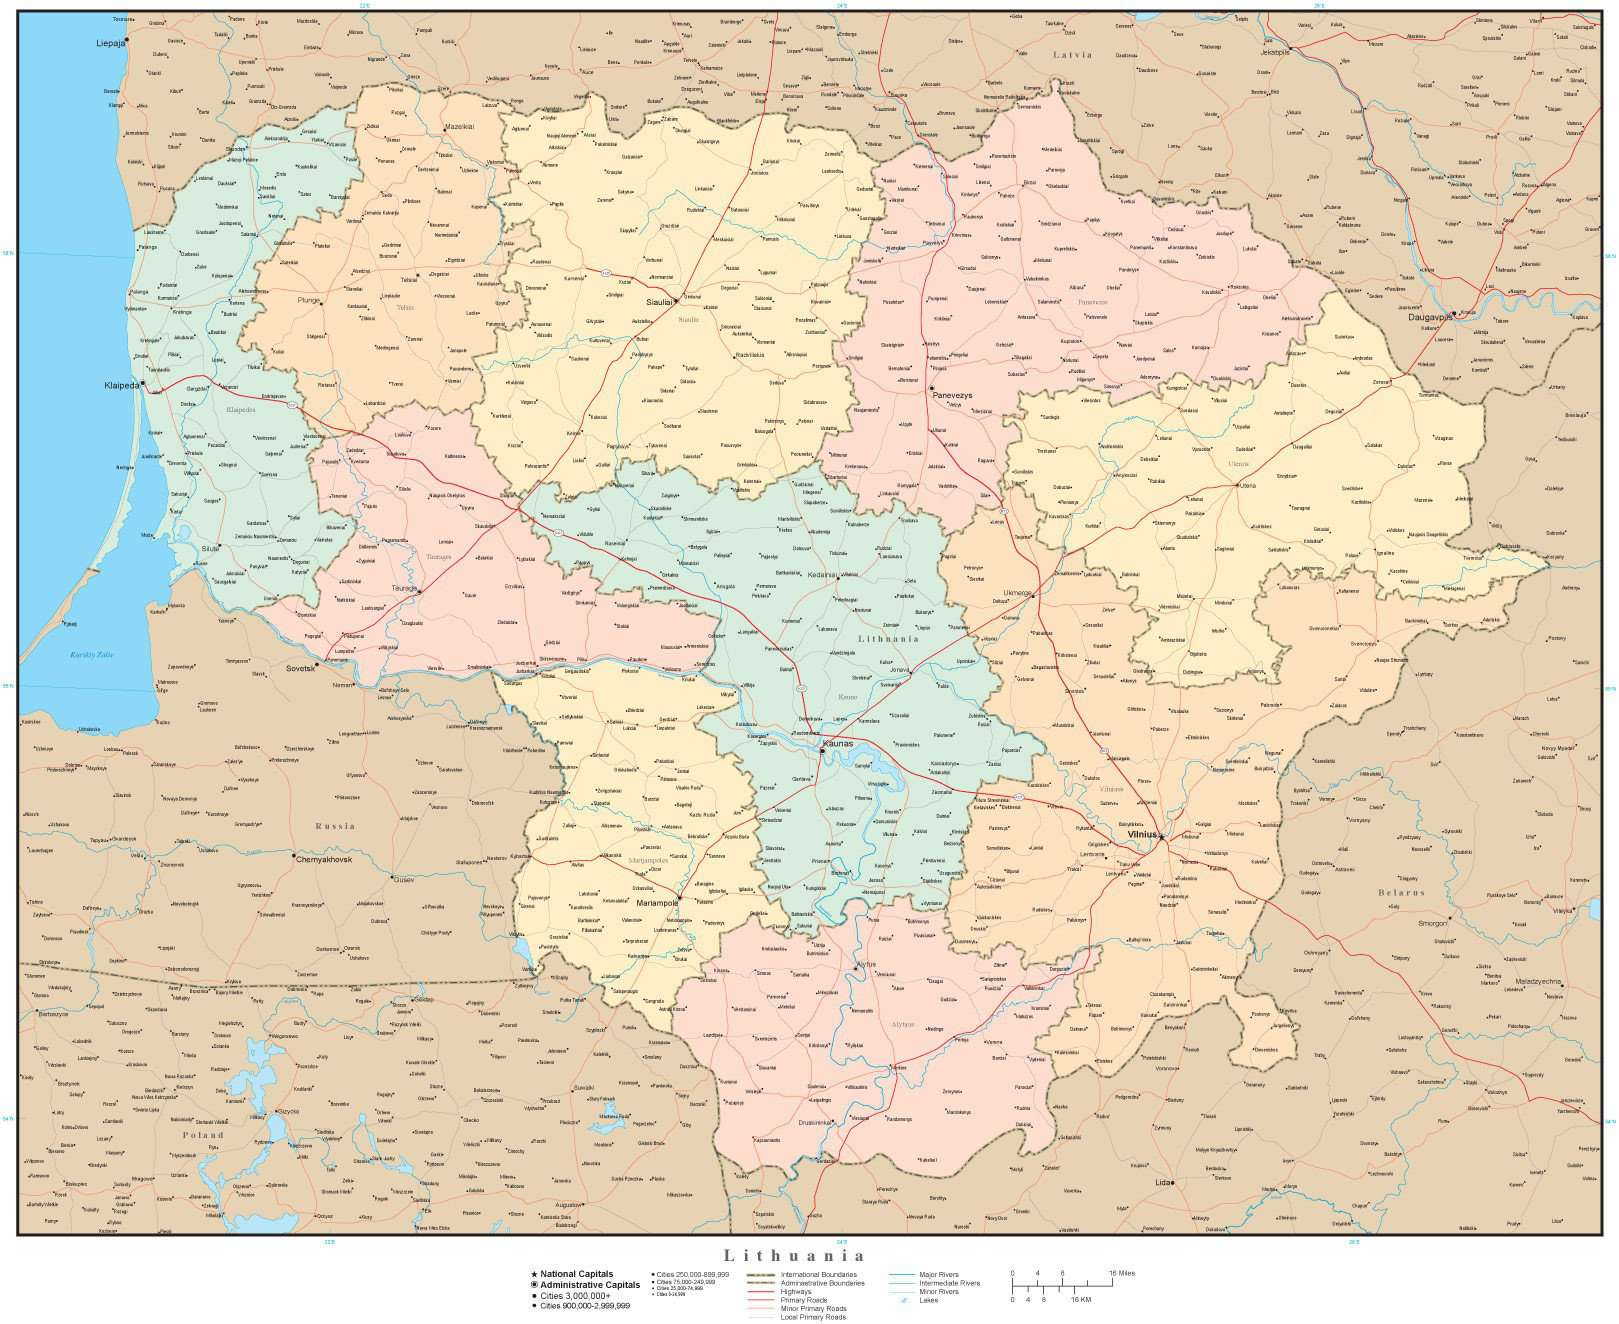 Lithuania map in Adobe Illustrator vector format – Map Resources